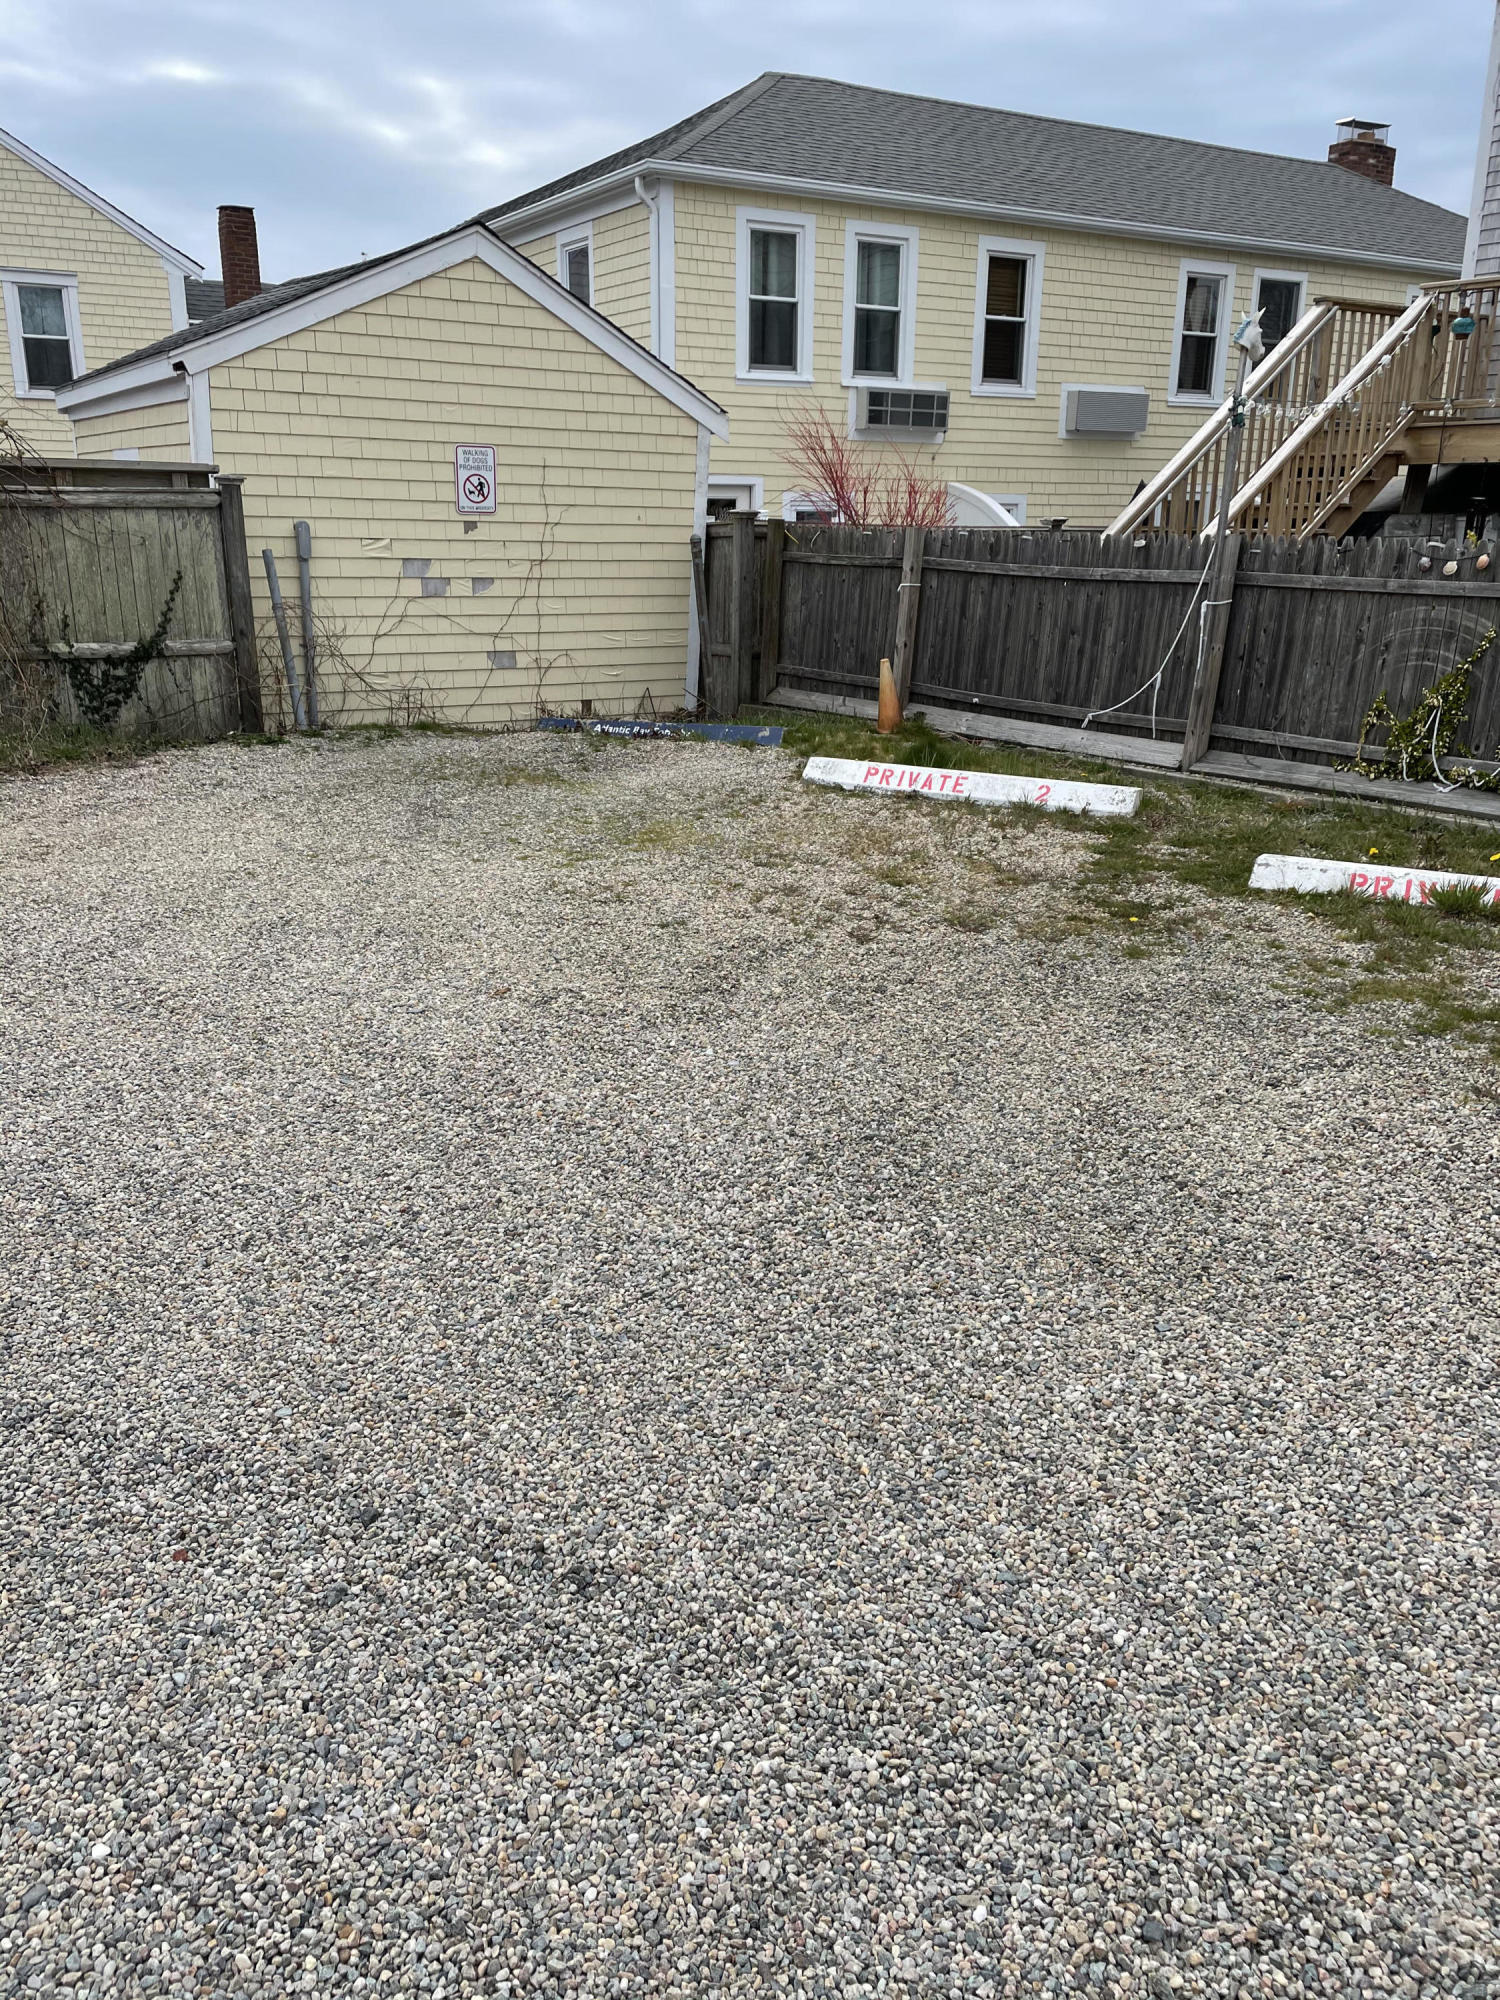 170 Commercial Street, Provincetown MA, 02657 details